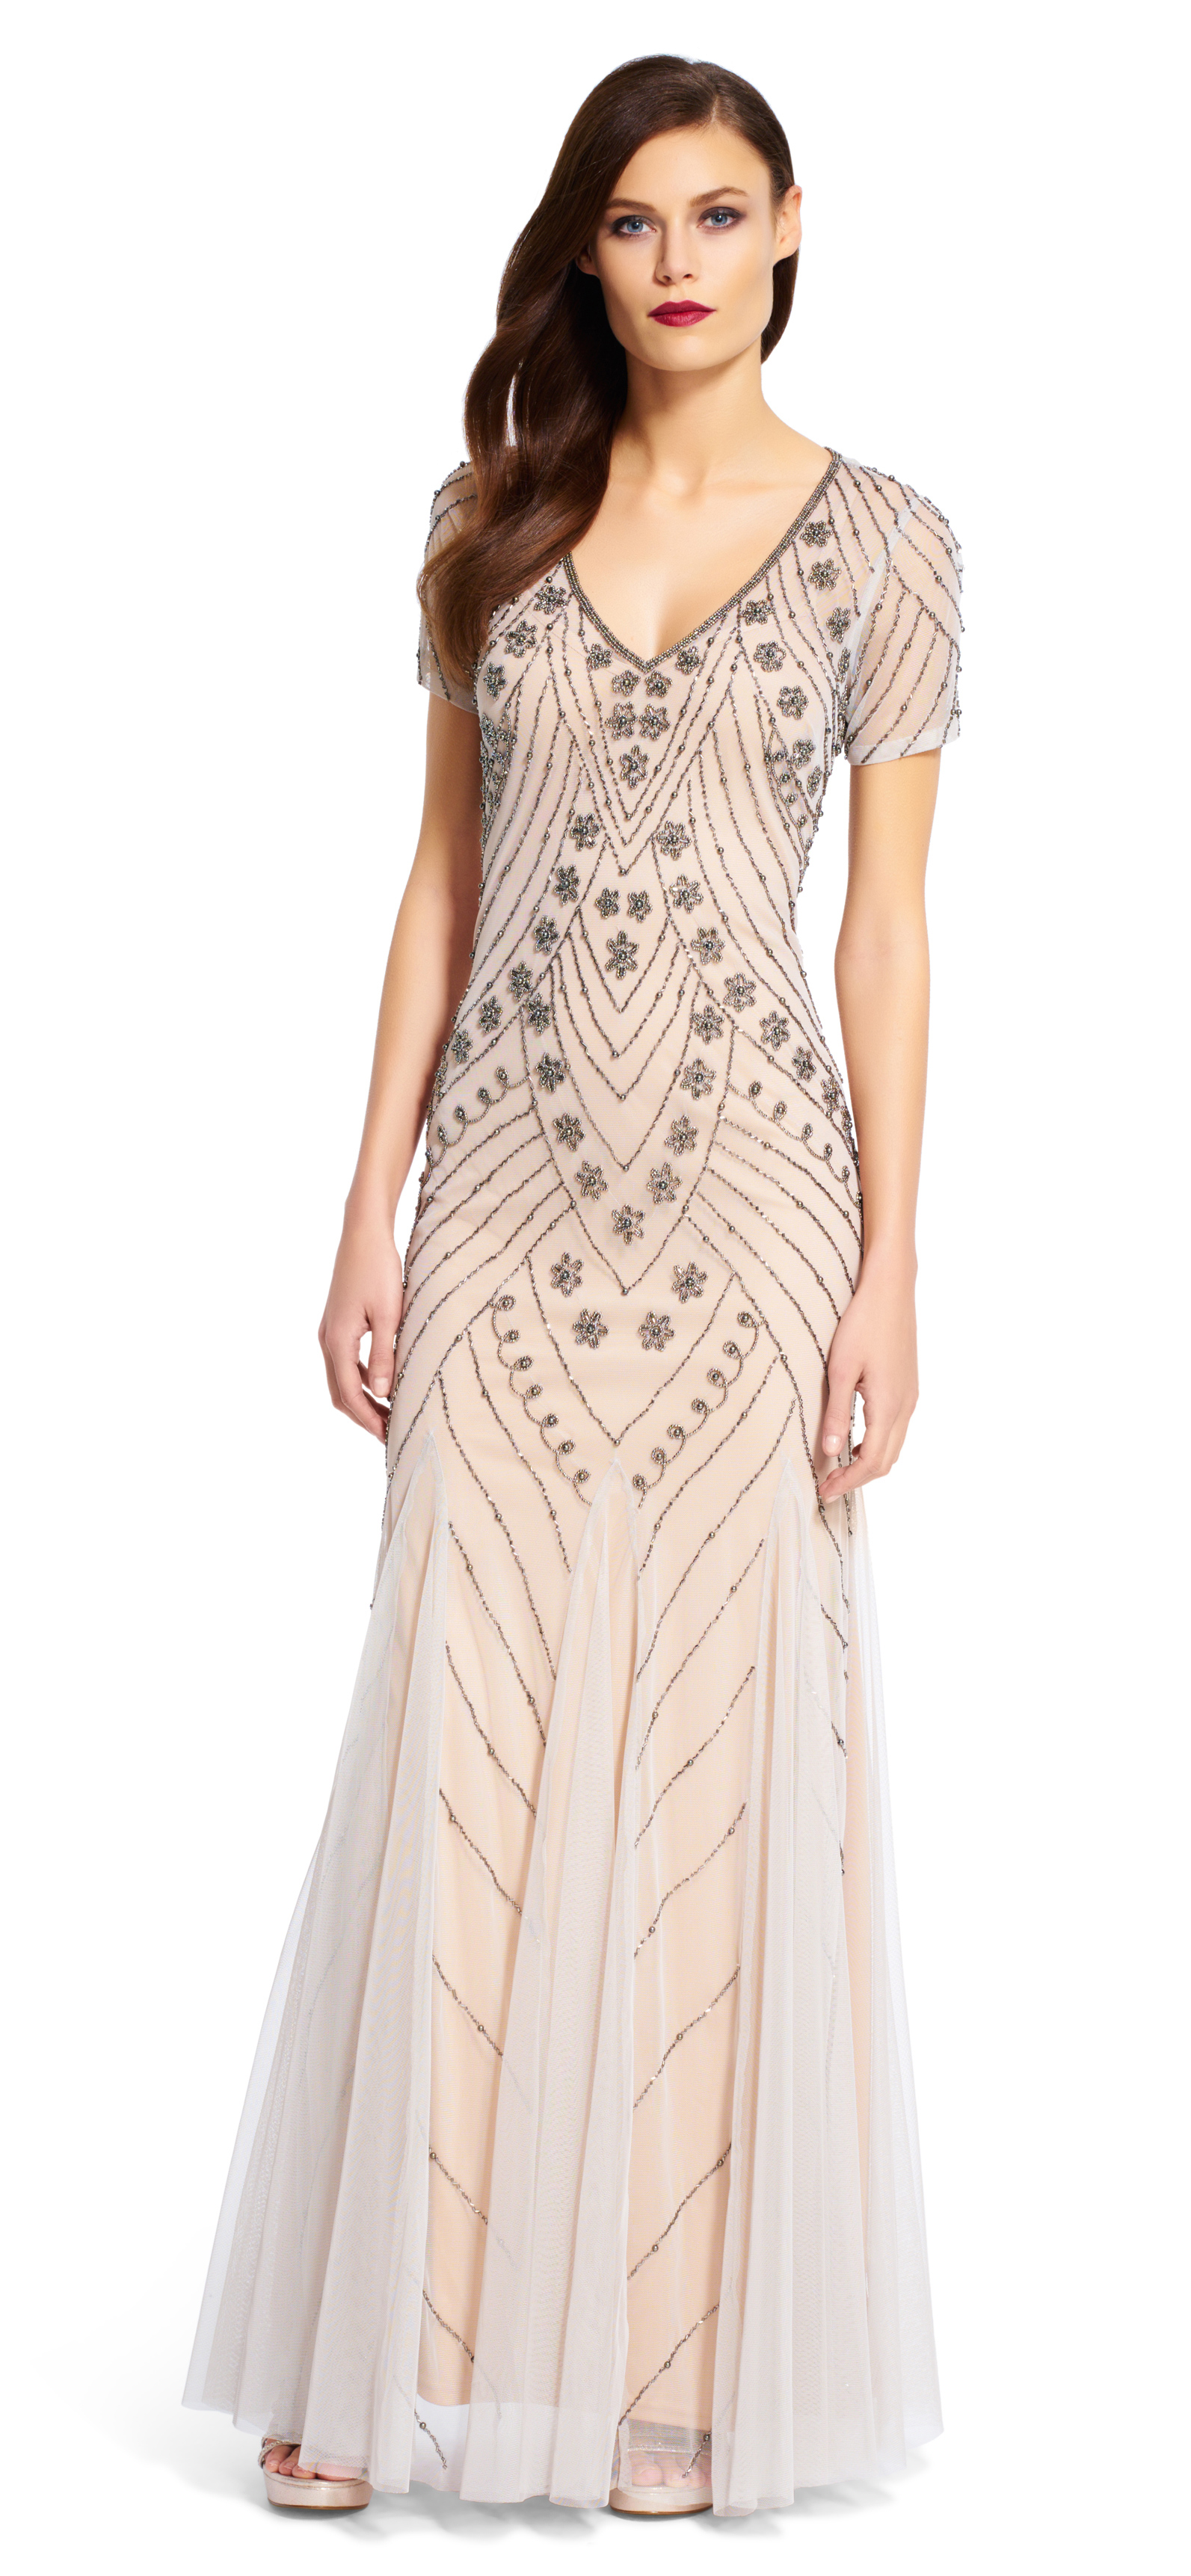 2 points to know when selecting  Beaded Gown